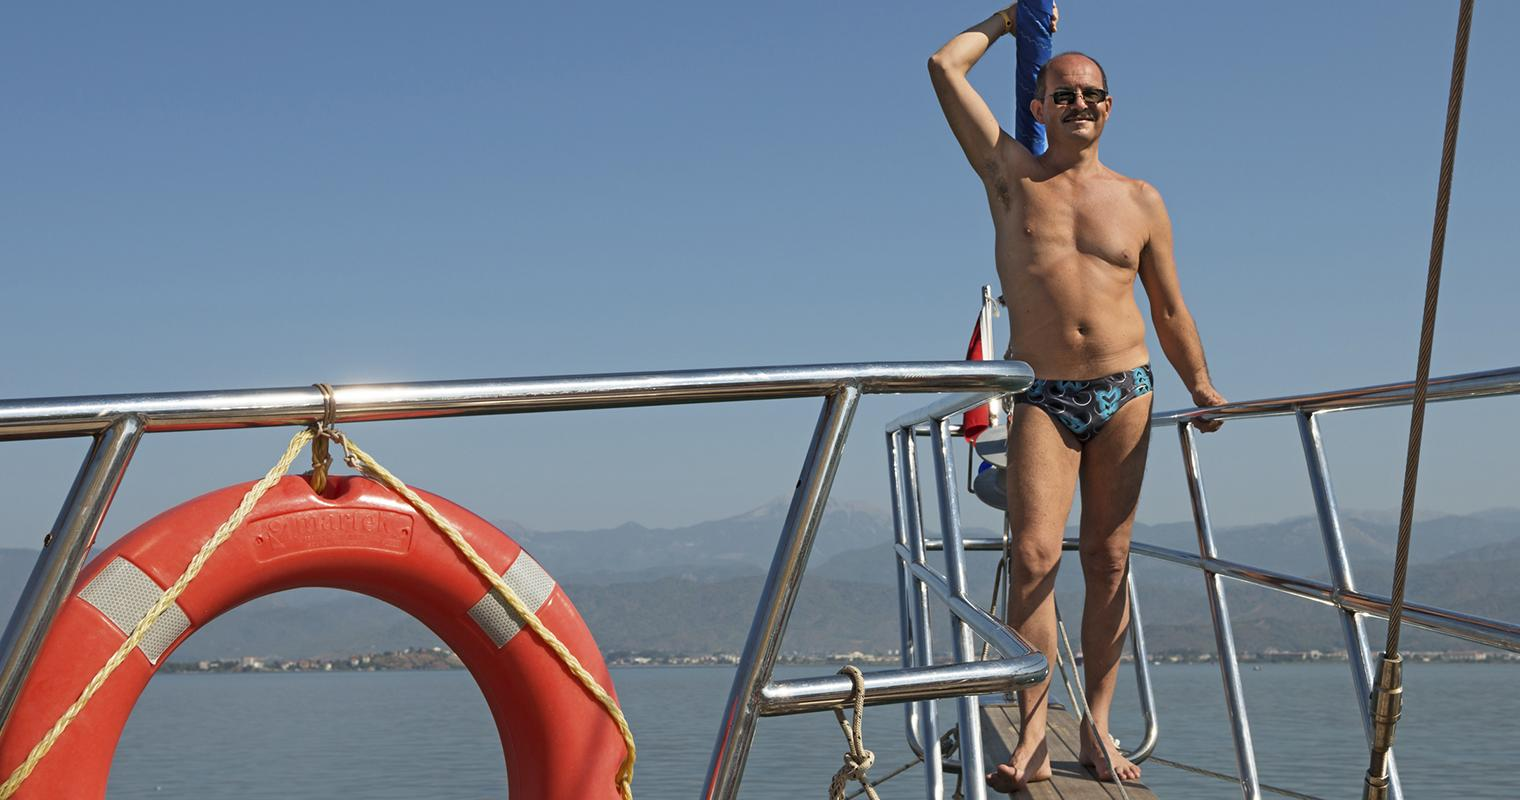 Pics of fat guys in speedos